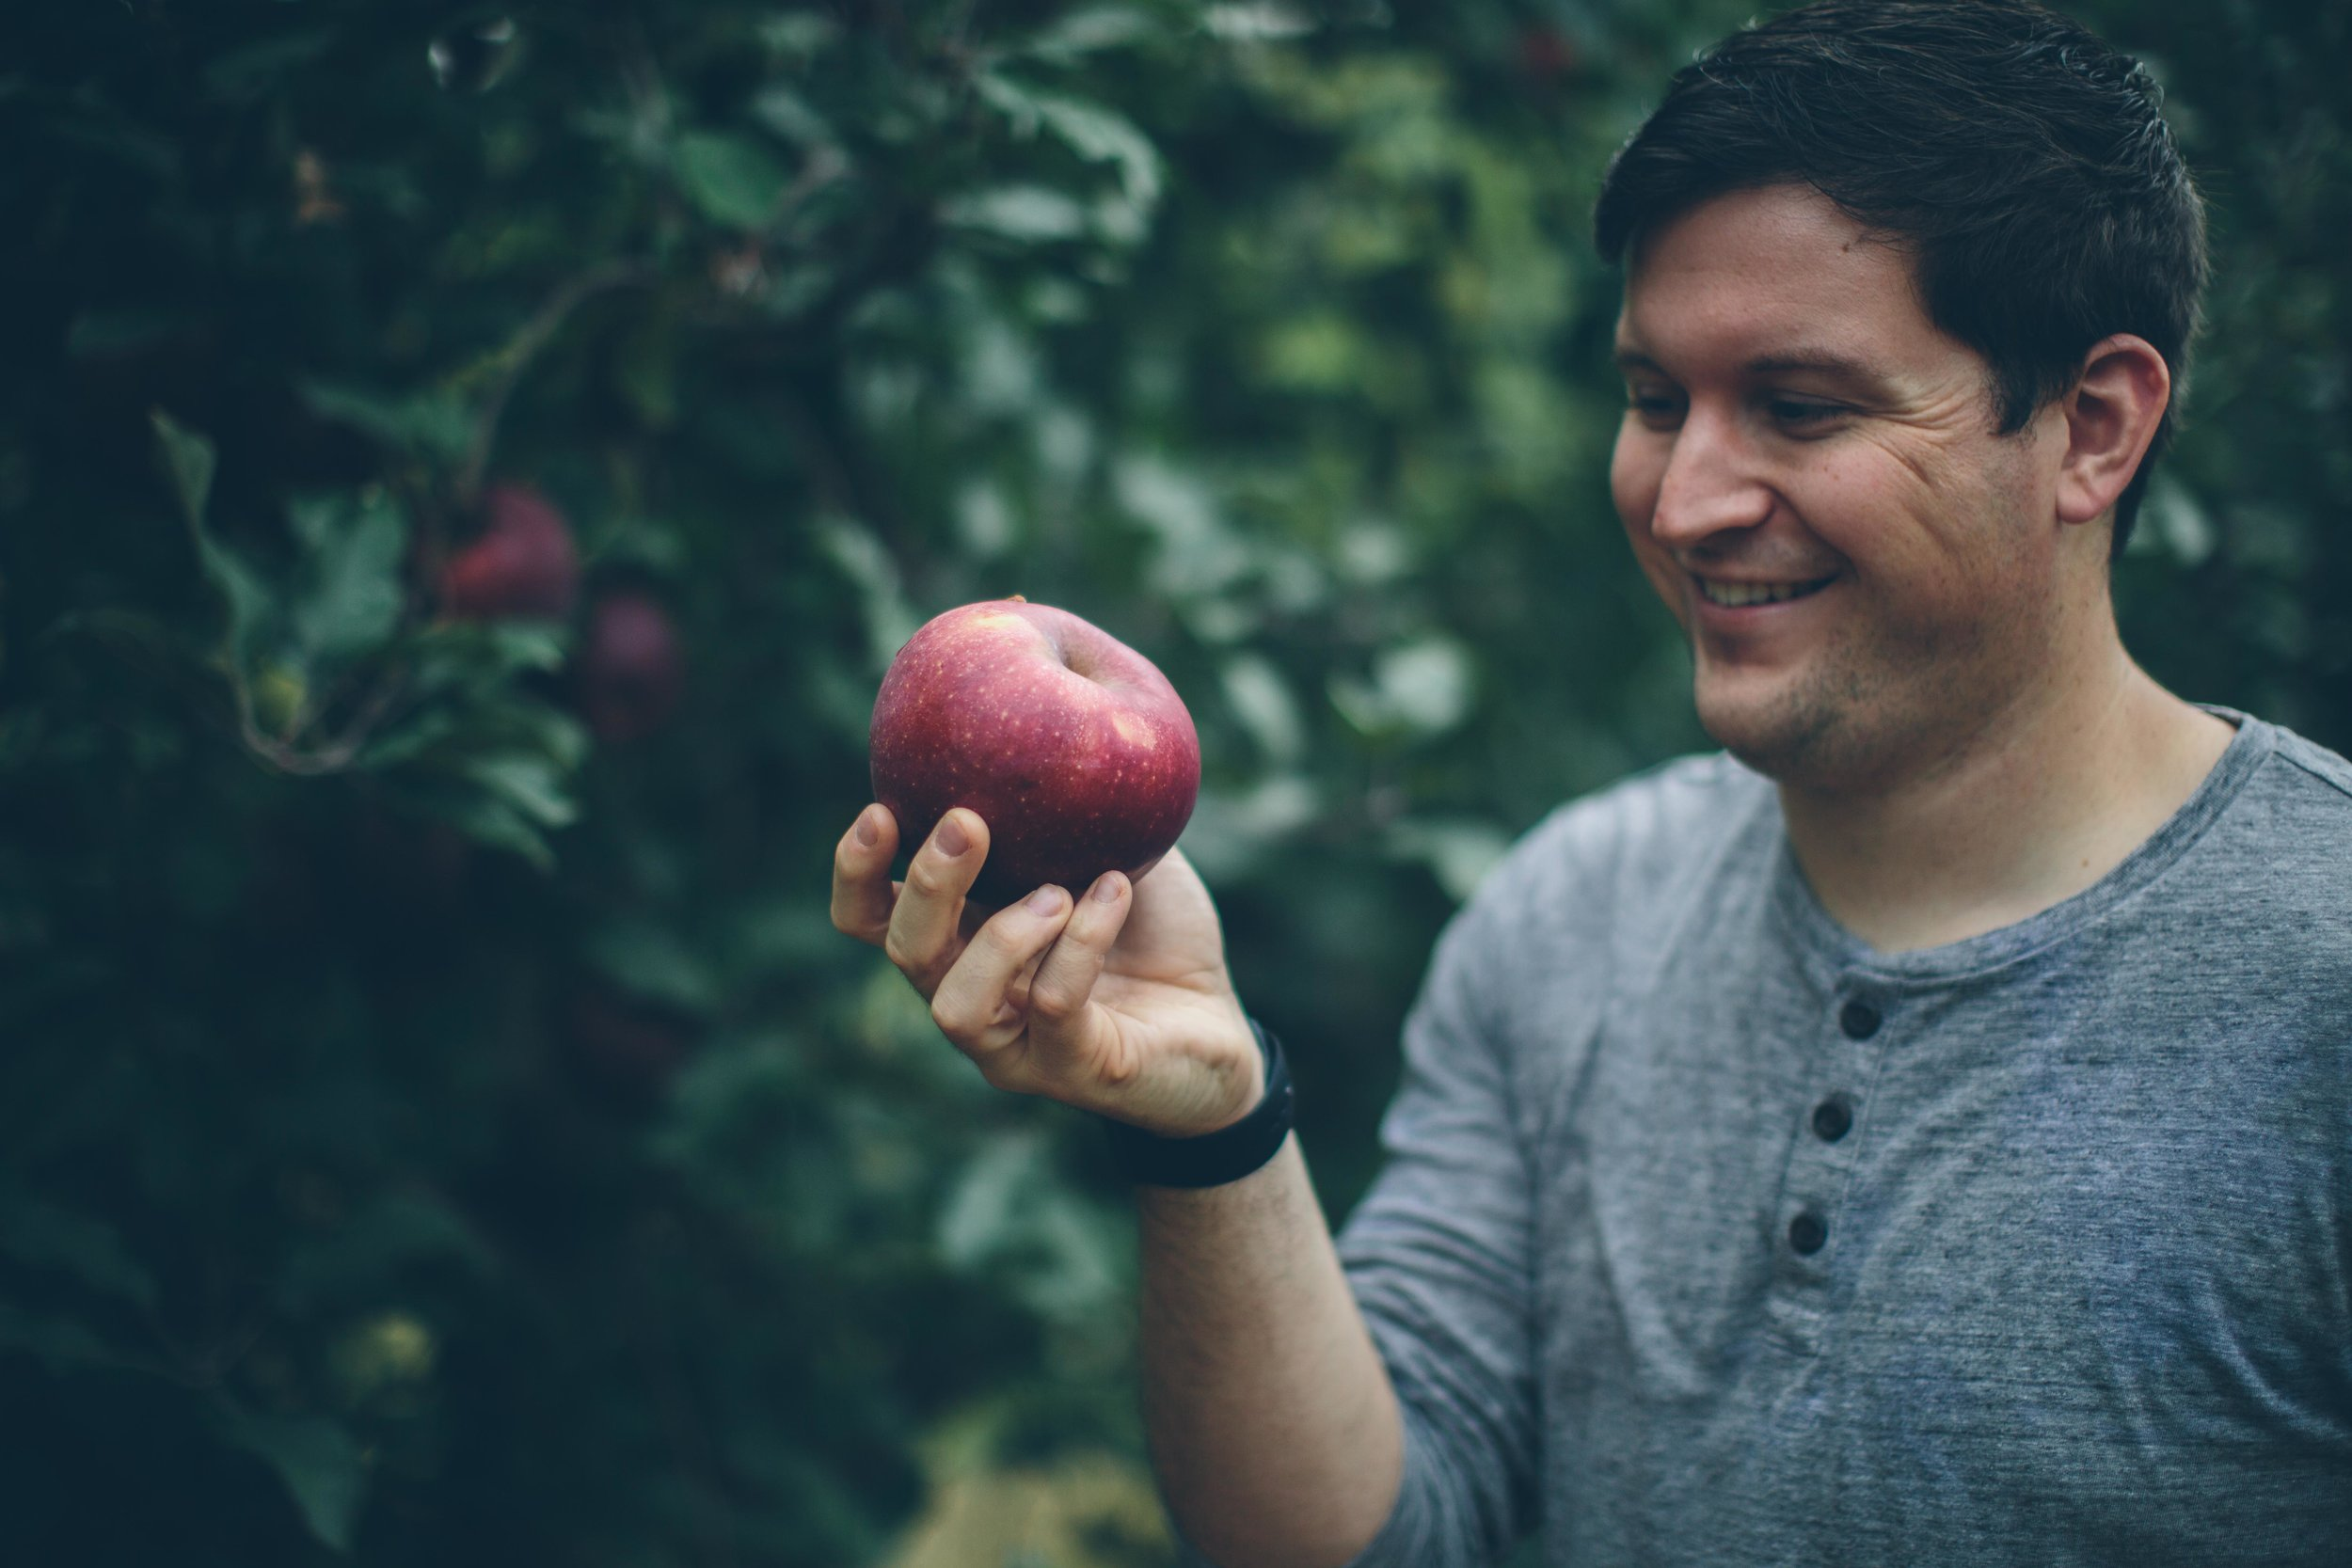 'Find you someone who will look at you the way I was looking at this apple.'